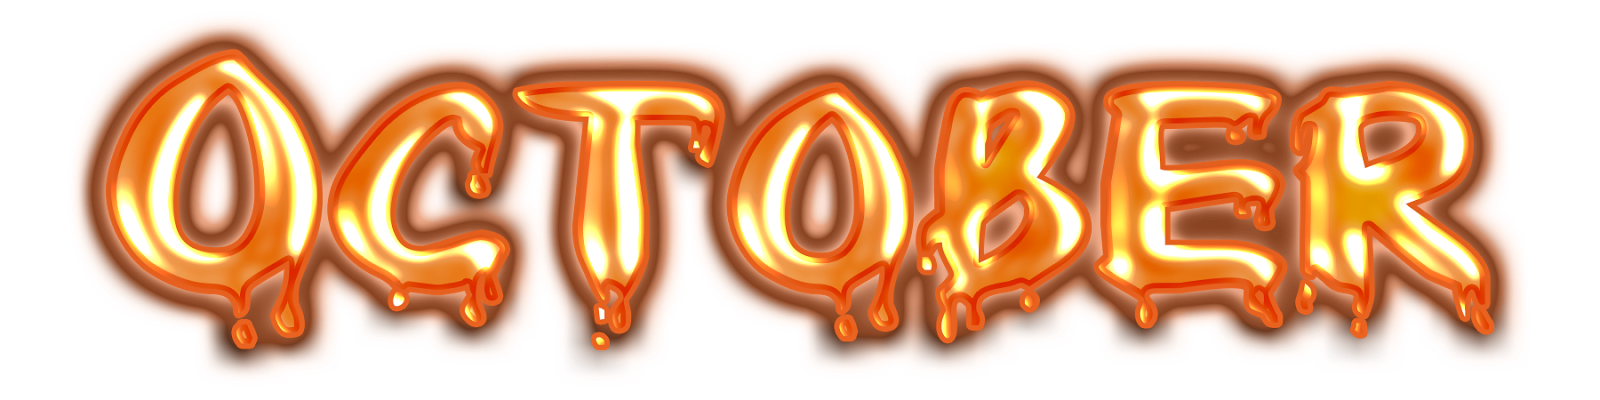 October png transparent. Images free download pngmart